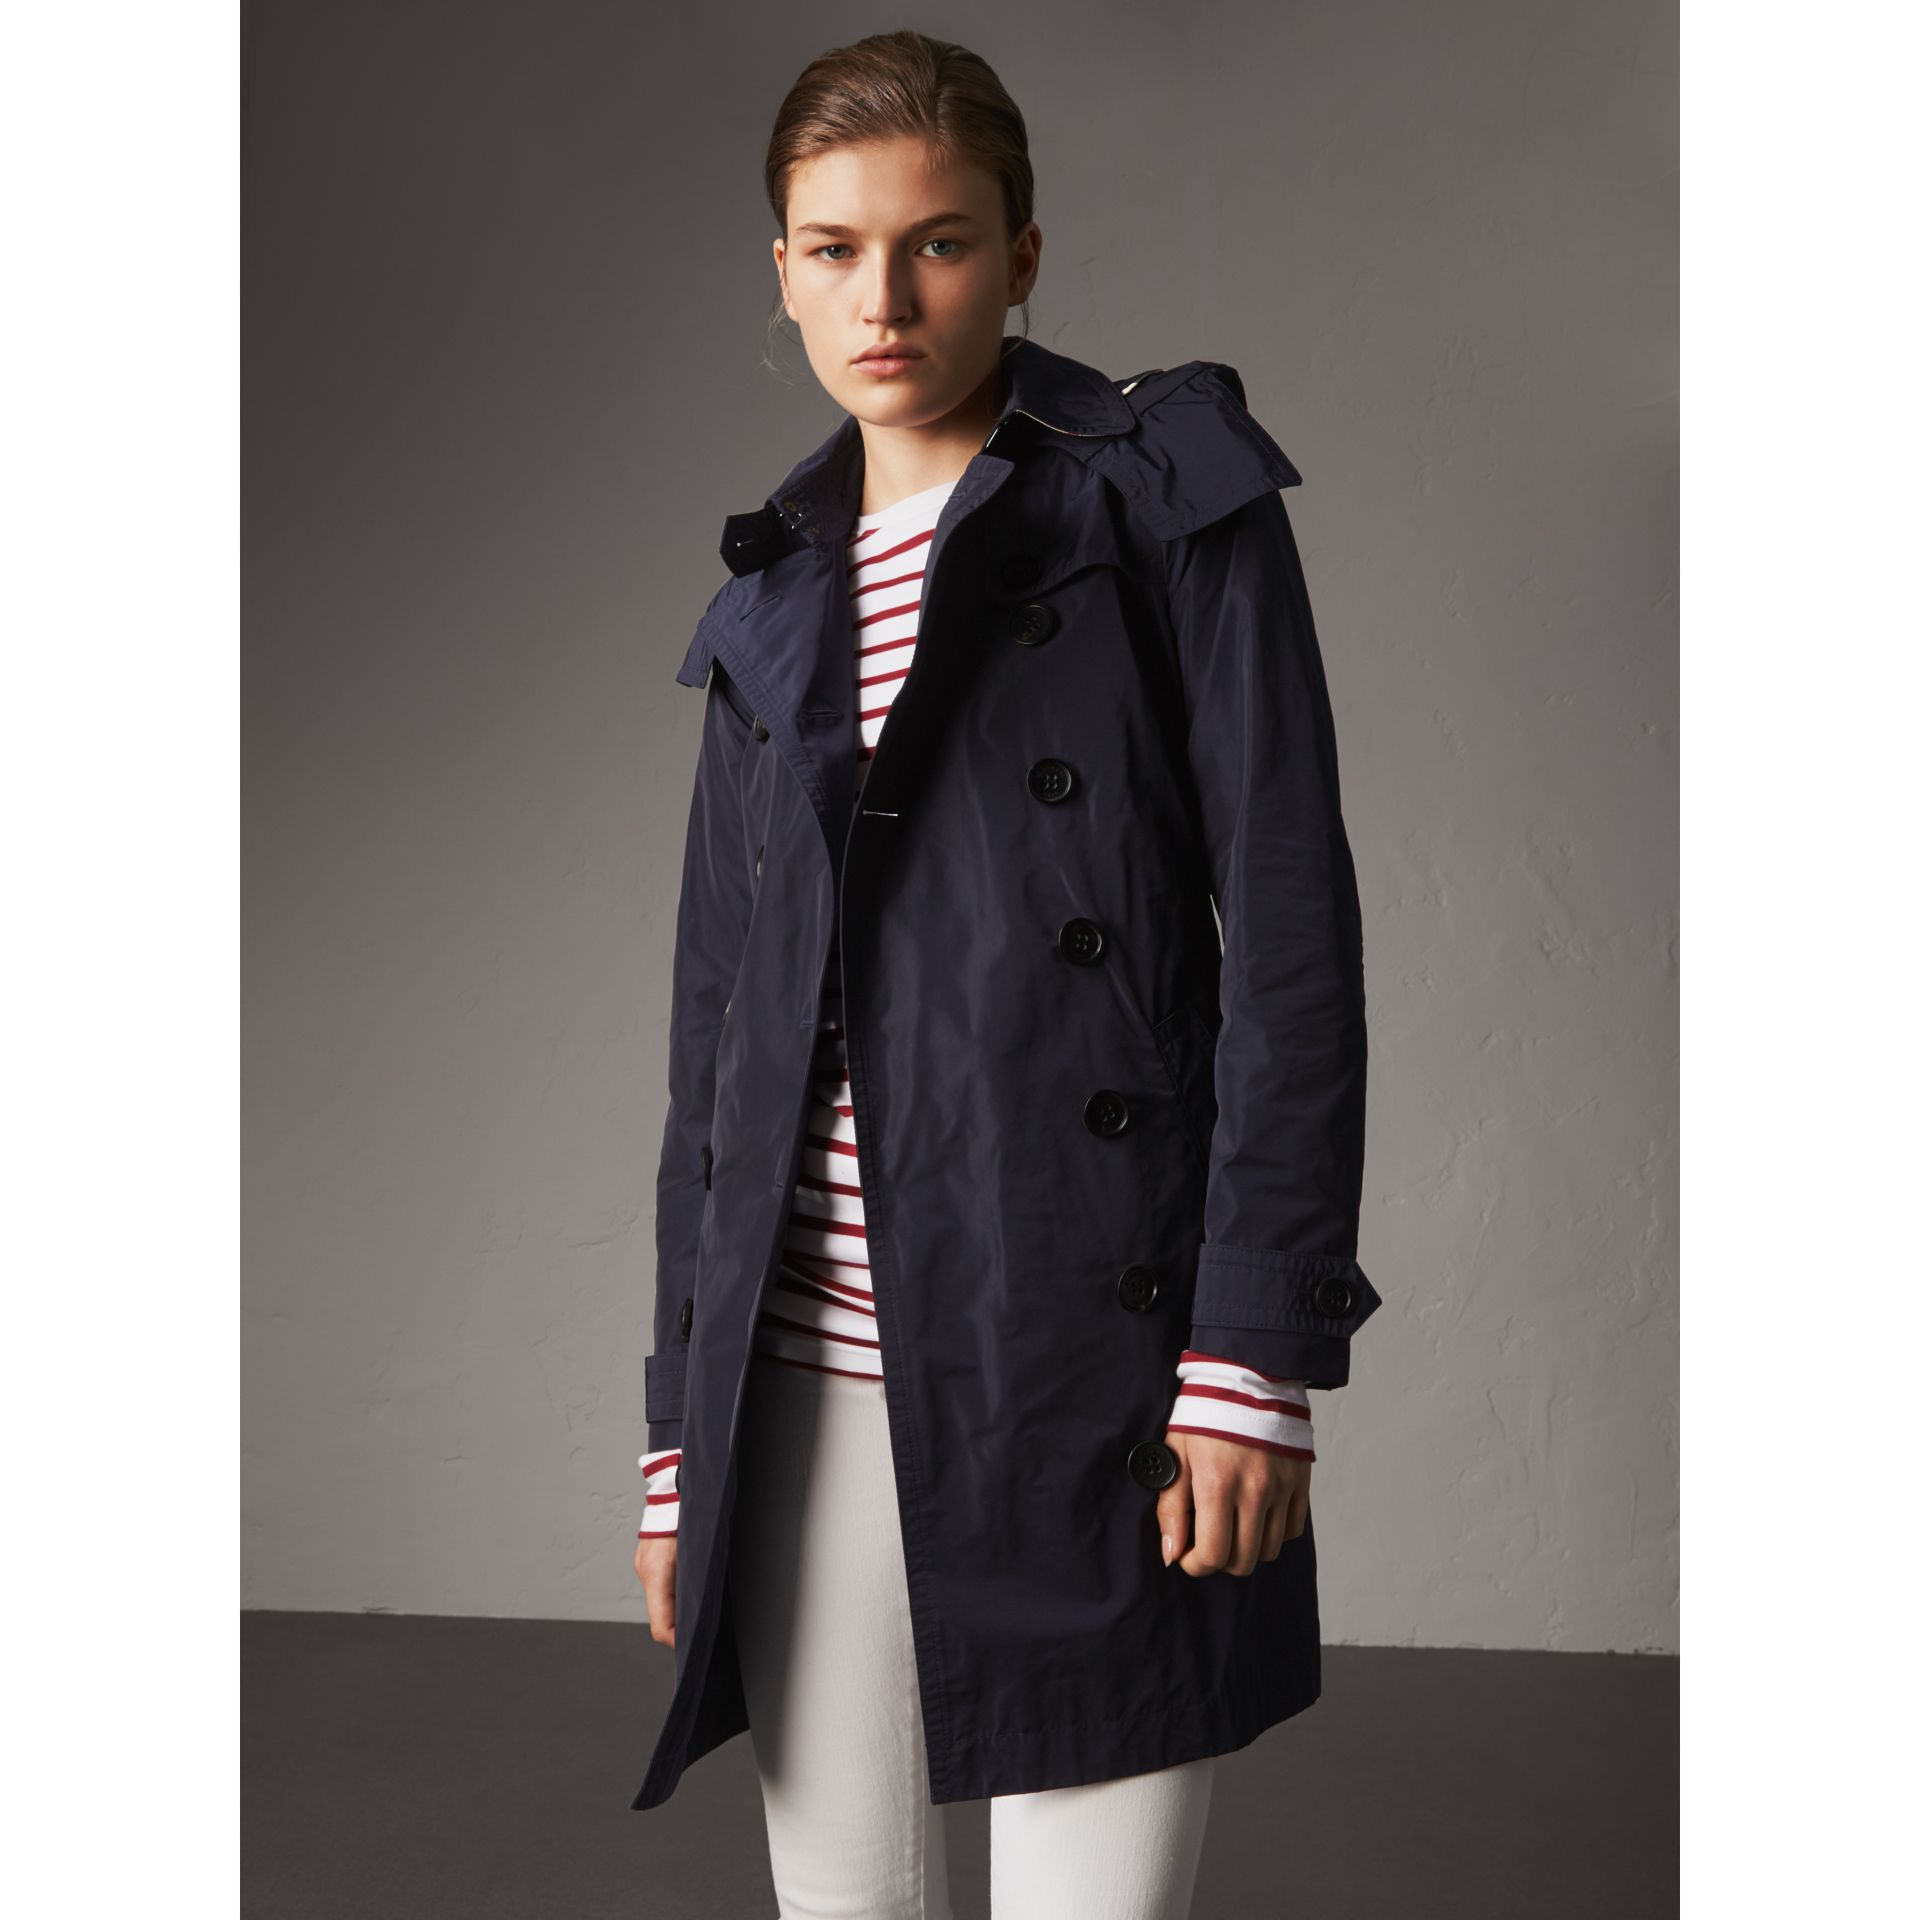 Taffeta Trench Coat with Detachable Hood in Navy - Women | Burberry Hong Kong - gallery image 1